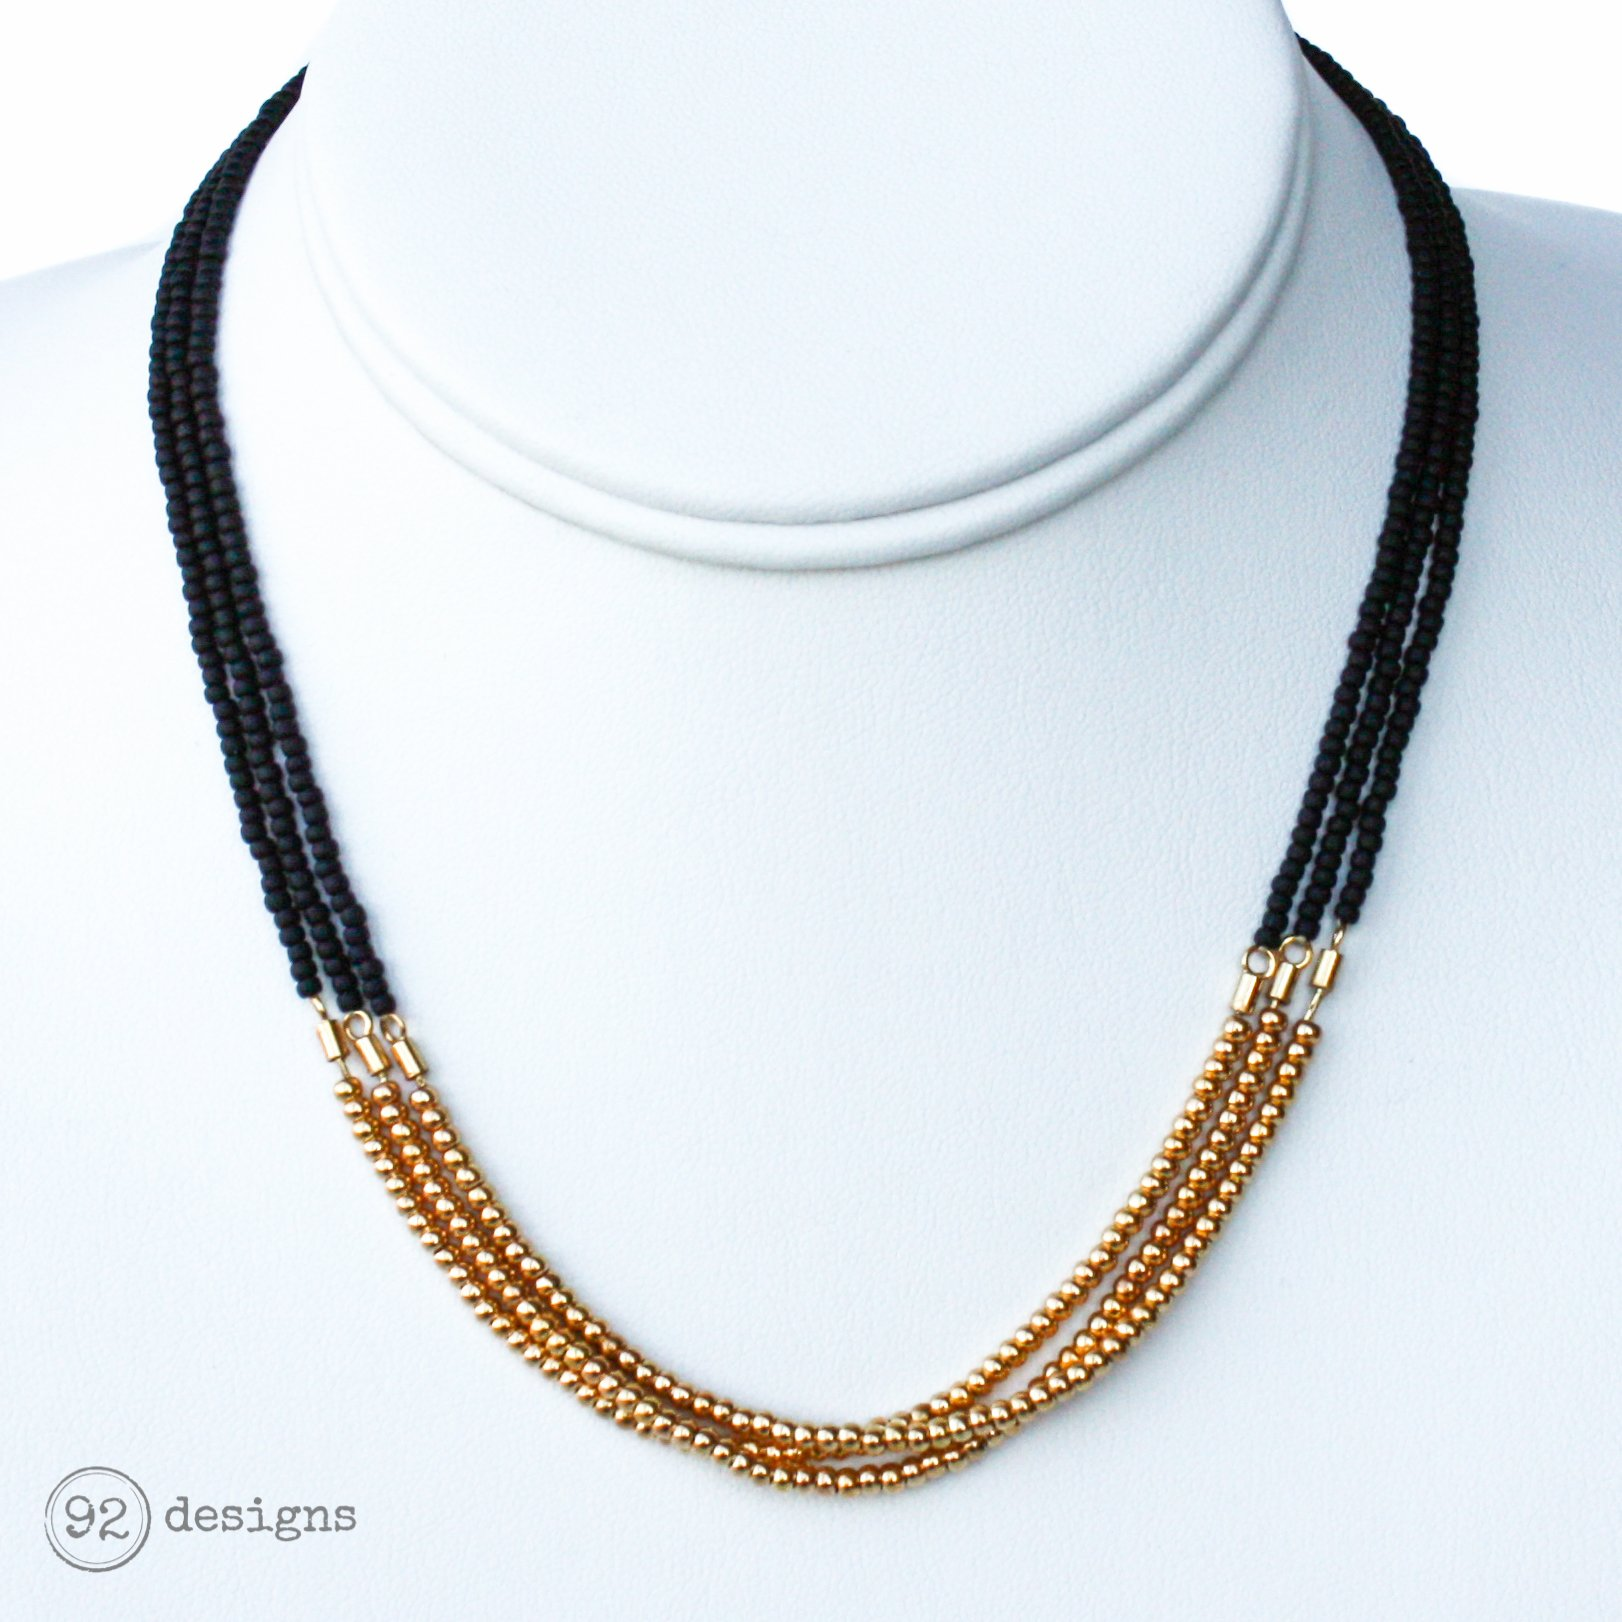 products fabuleux jewellery necklace belle yellow gold n vous